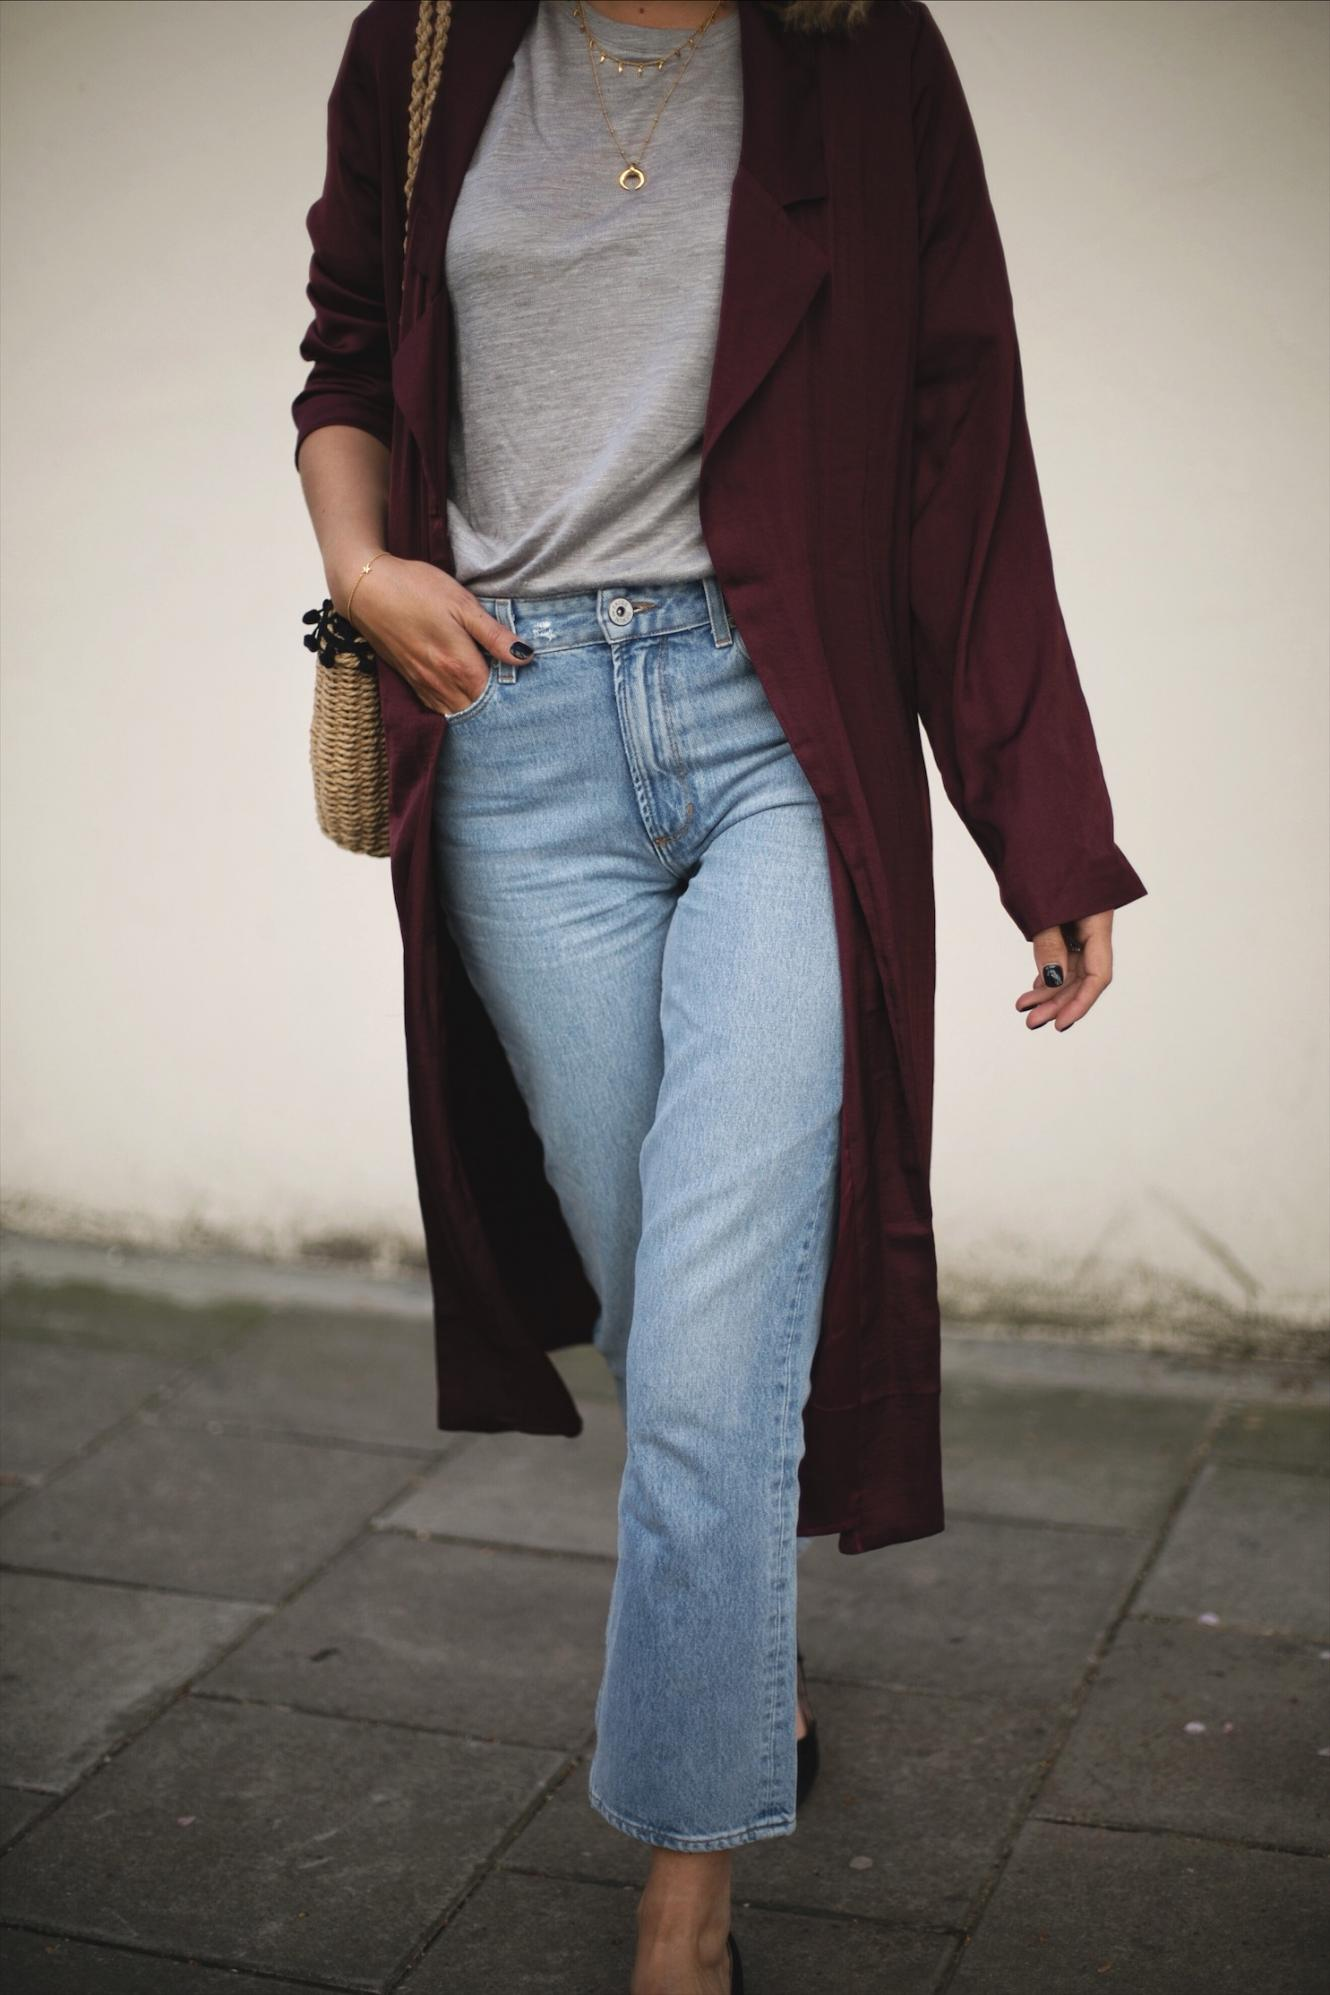 Emma Hill wears deep purple wine silky duster jacket kimono, straw basket bag with pom pom detail, cropped frayed hem jeans, Dune x Rupert Sanderson low block heels, outfit ideas for Spring